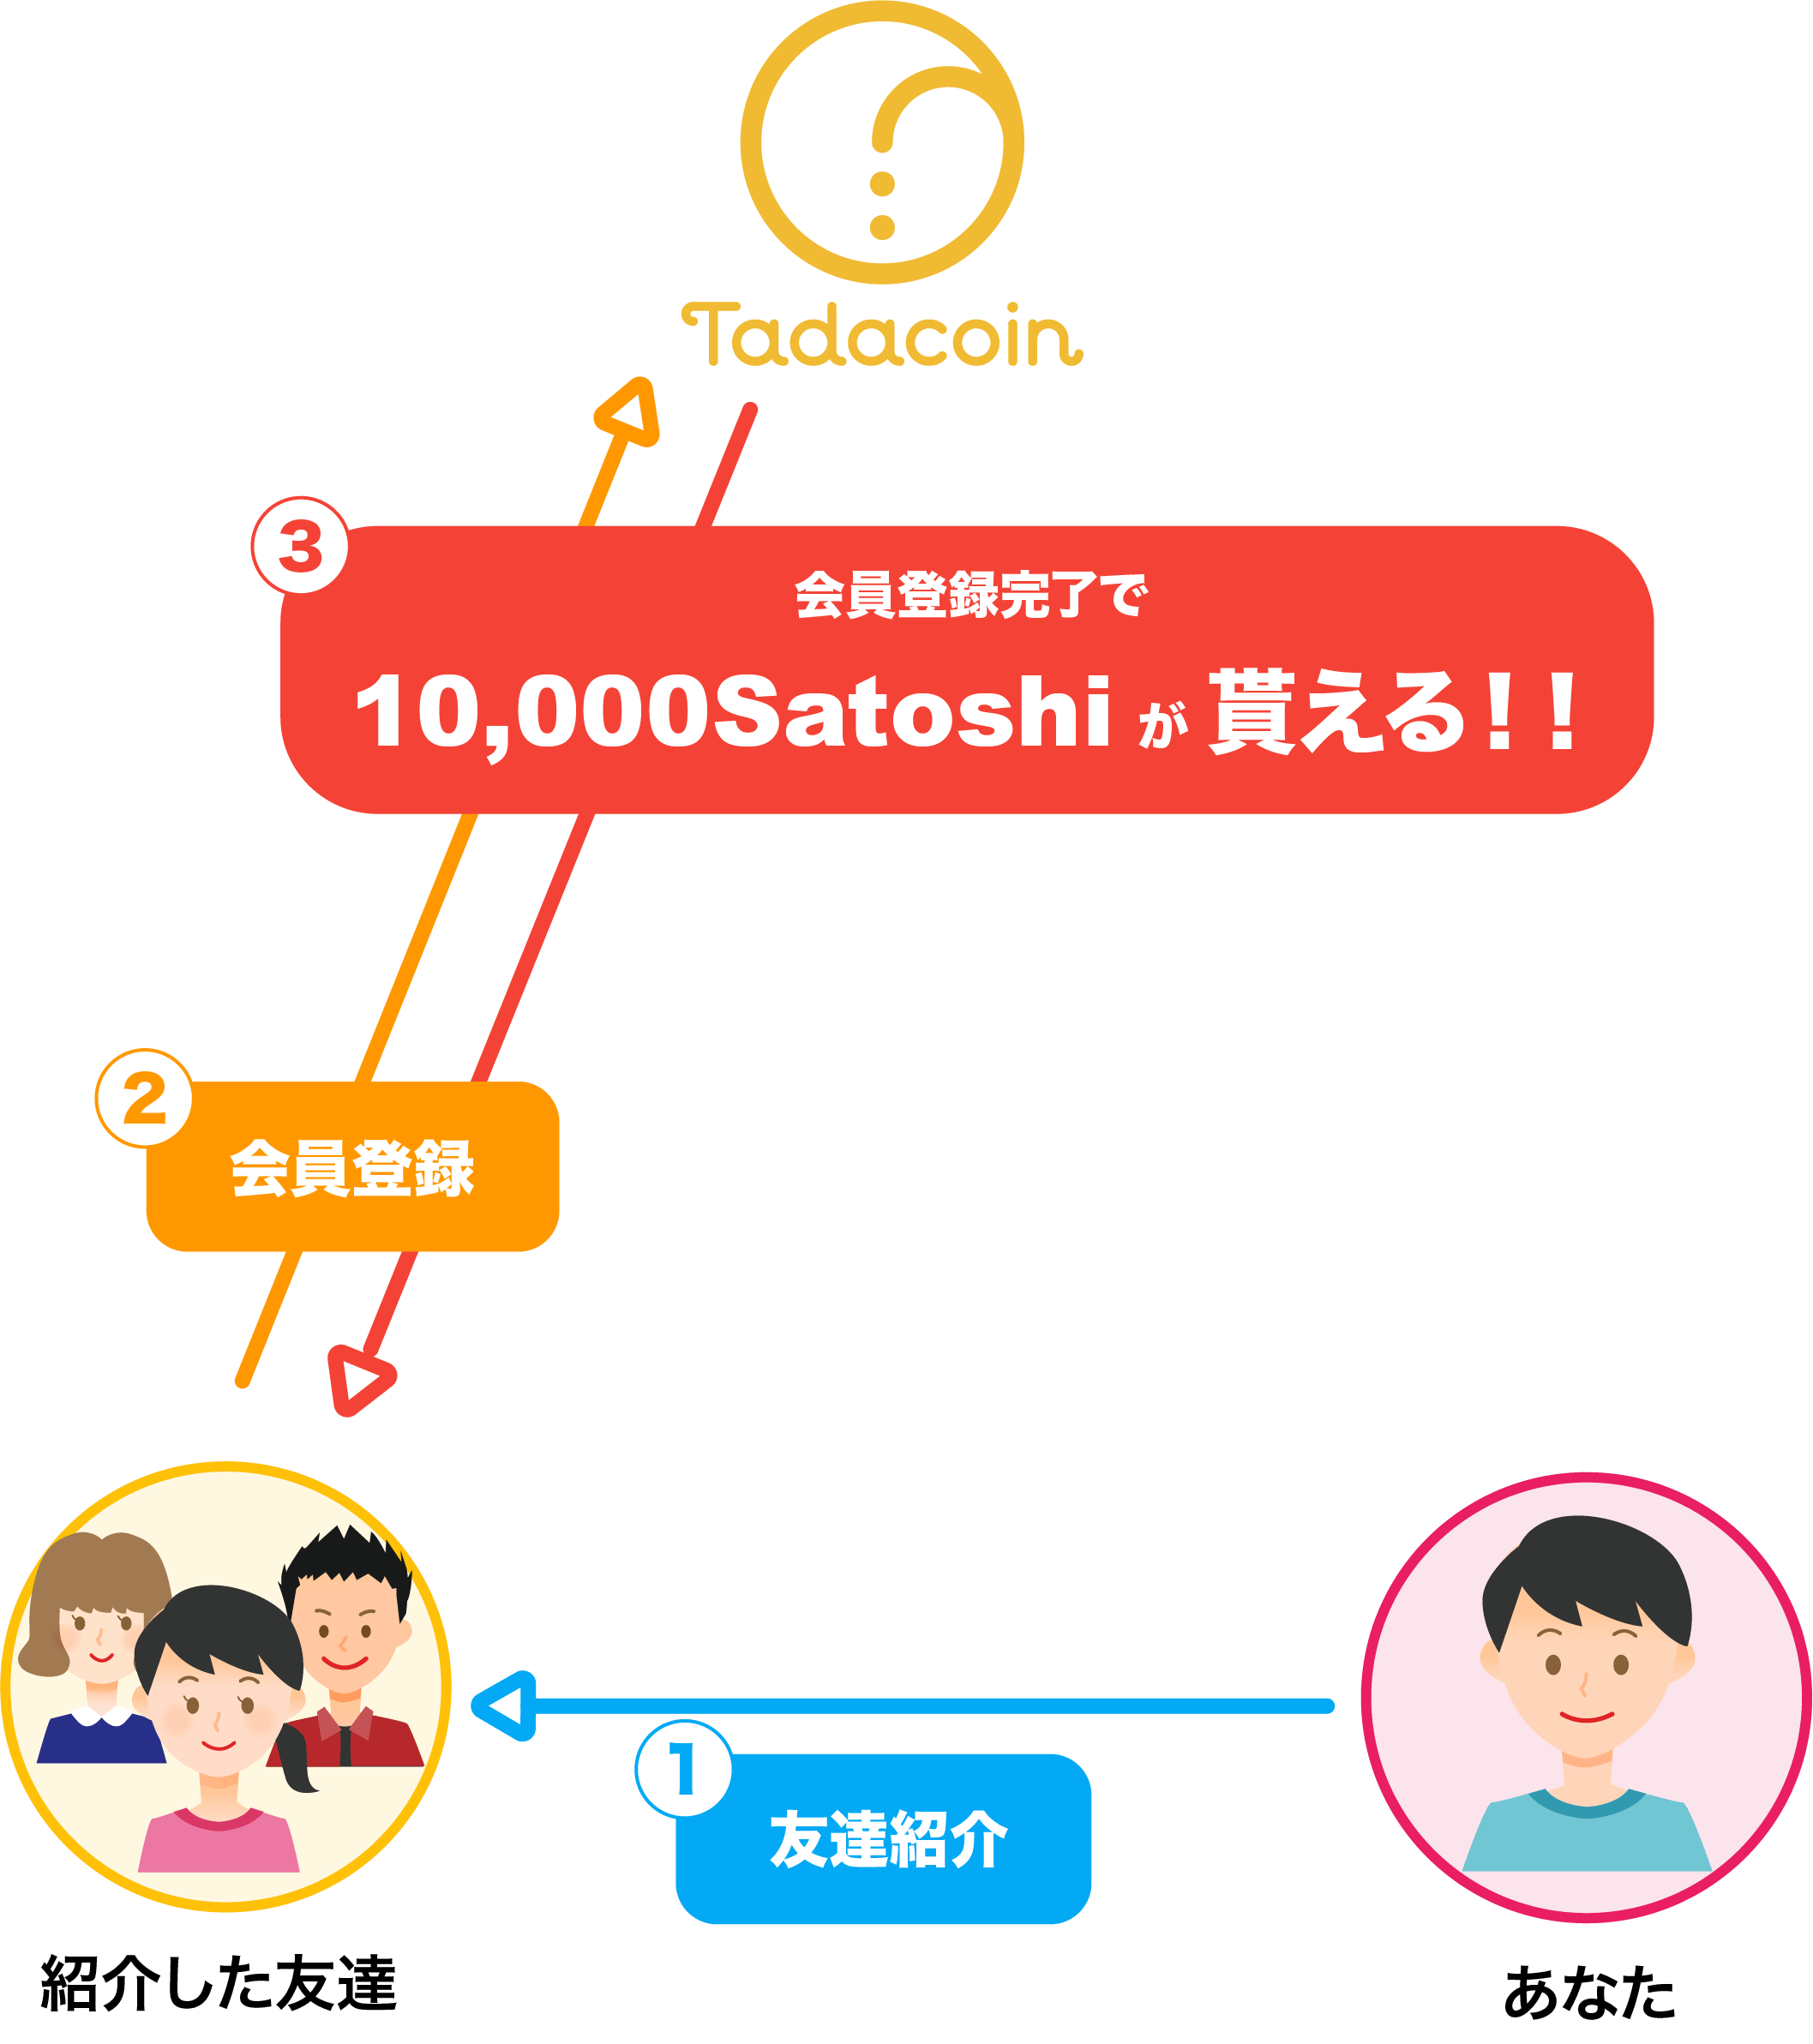 tadacoin-new-touroku